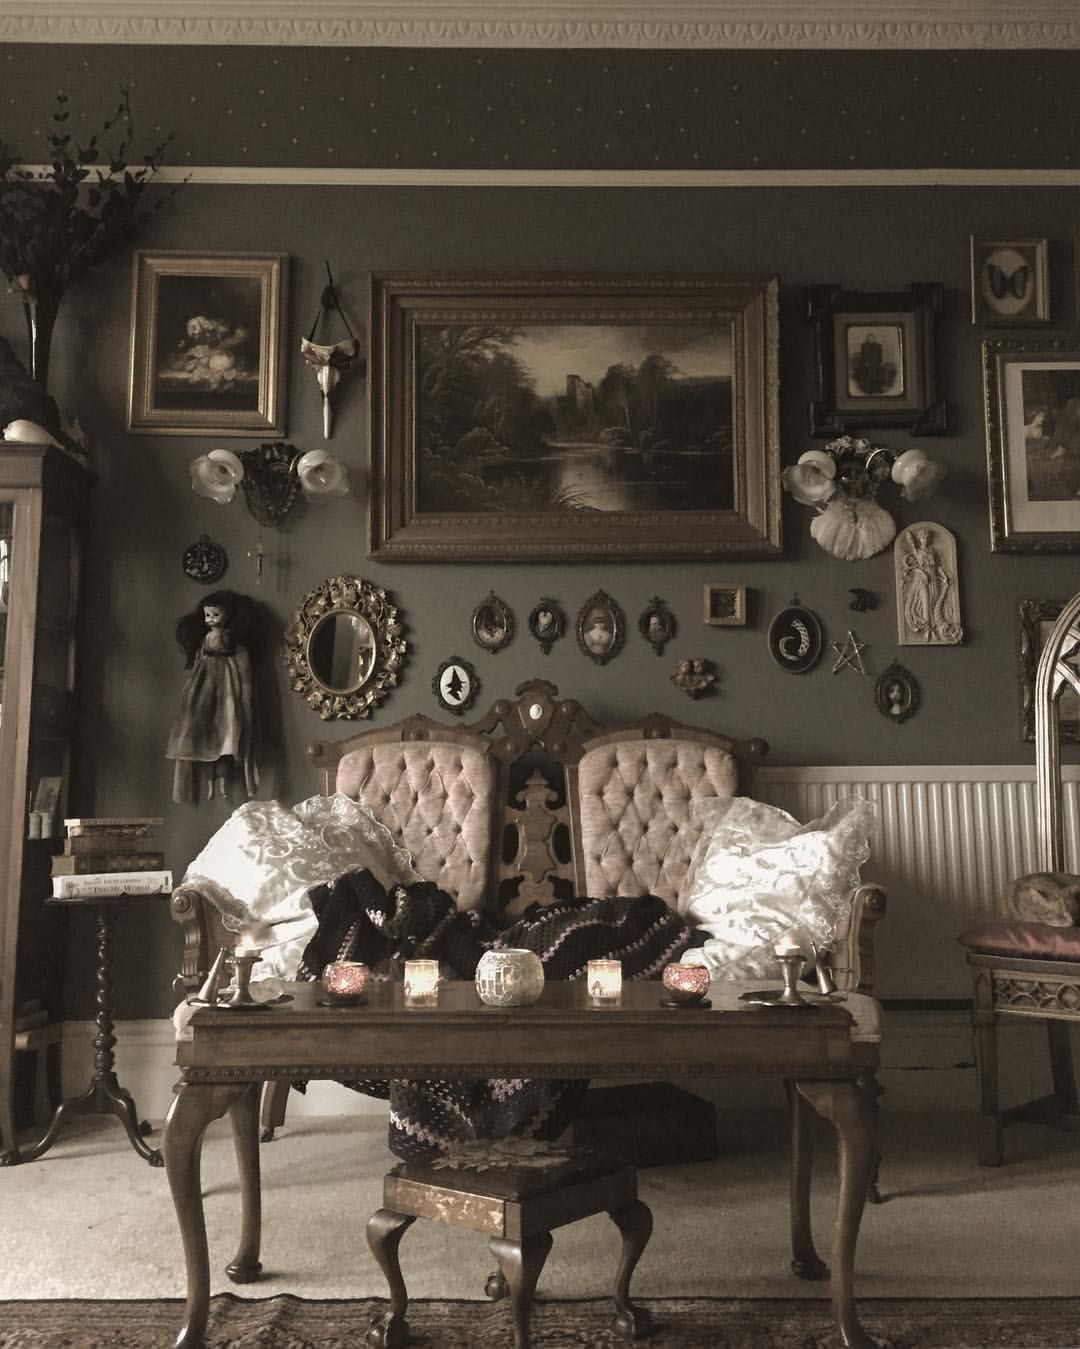 Steampunk Bedroom Ideas Home Decor Goth Creepy